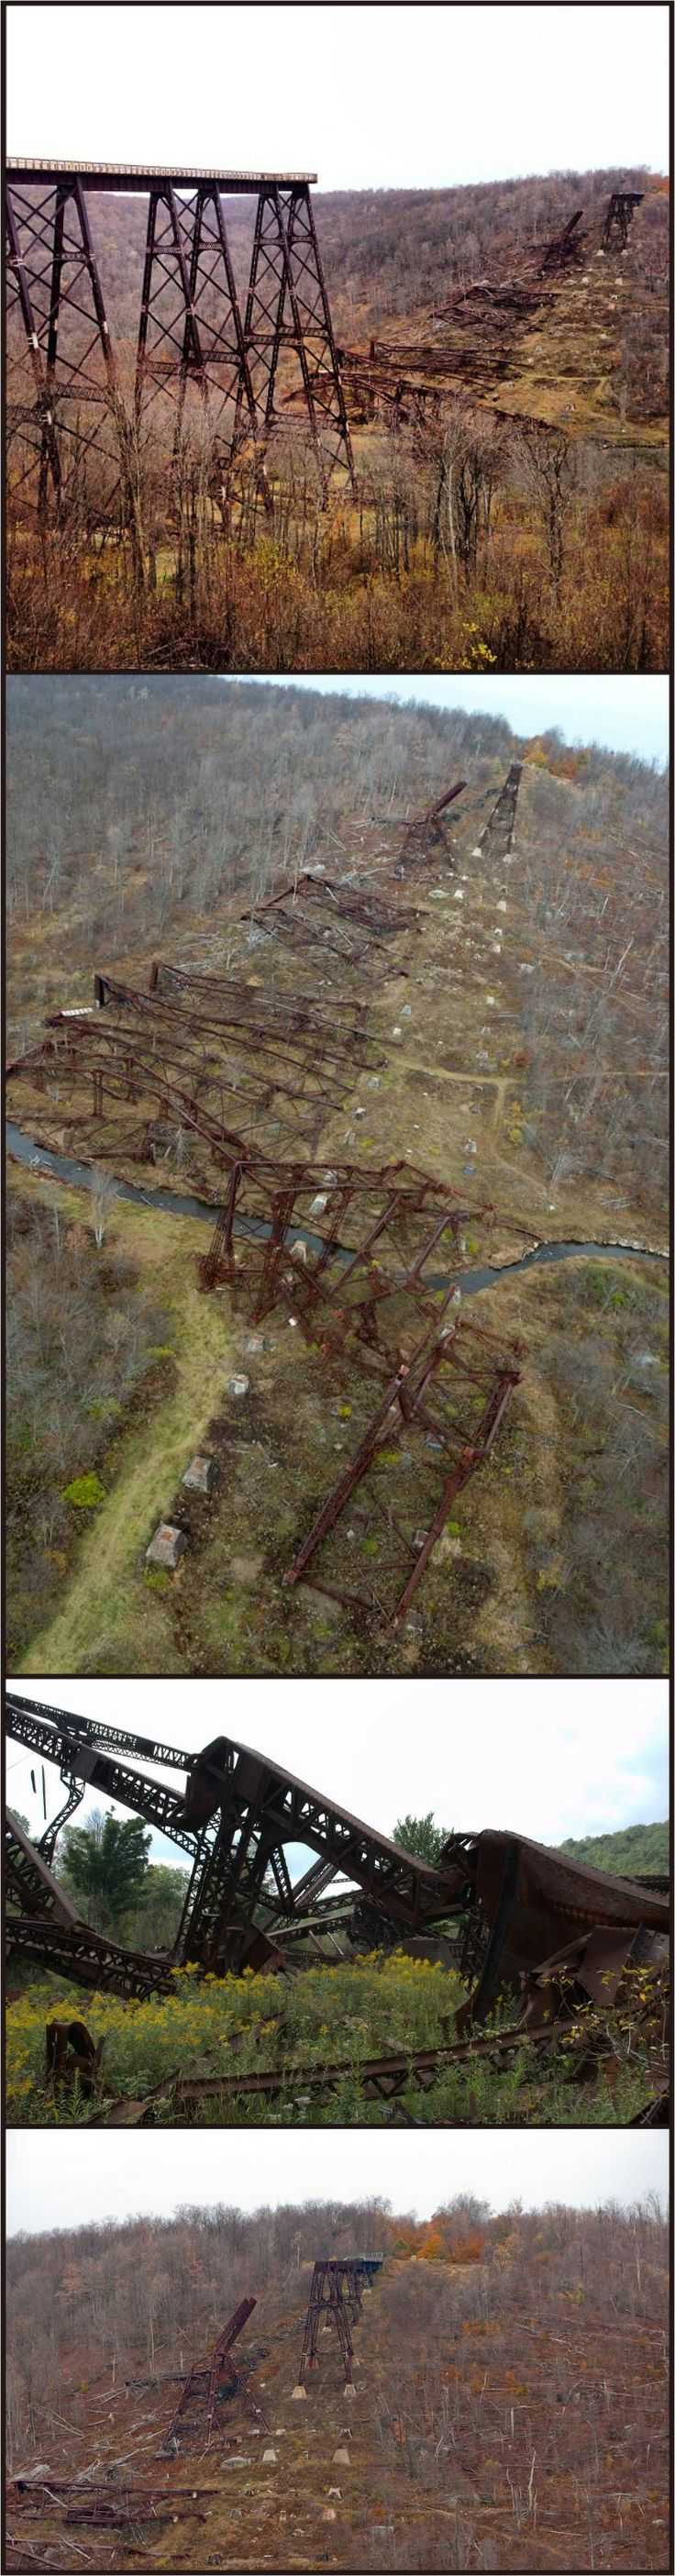 Kinzua Bridge: Once the World's Longest Railroad Bridge, Destroyed by Tornado